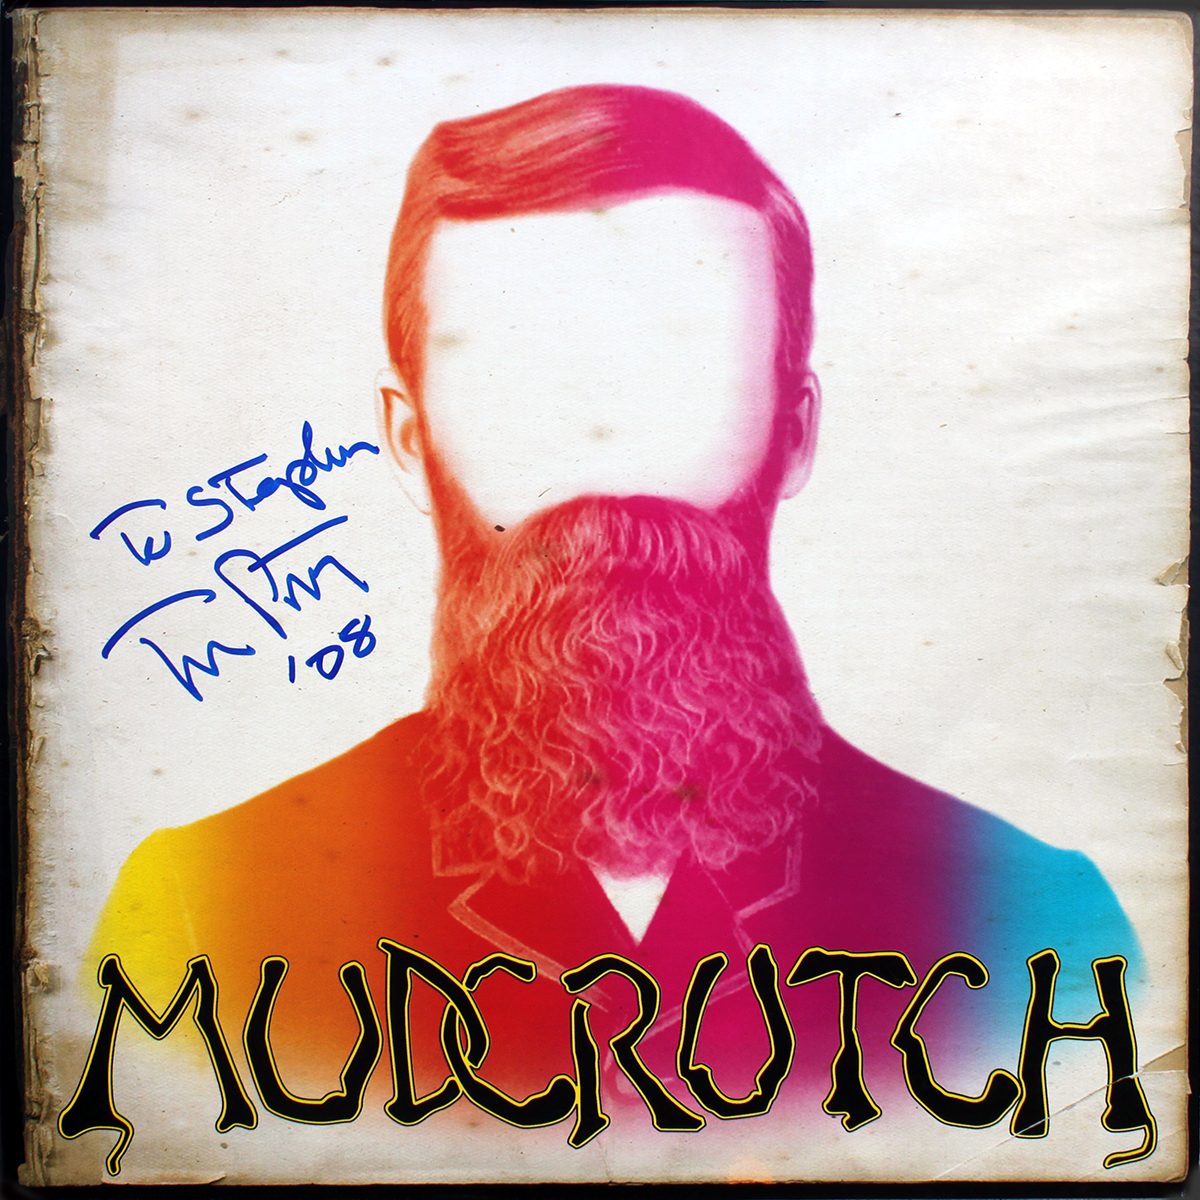 Tom Petty - Mudcrutch LP #1